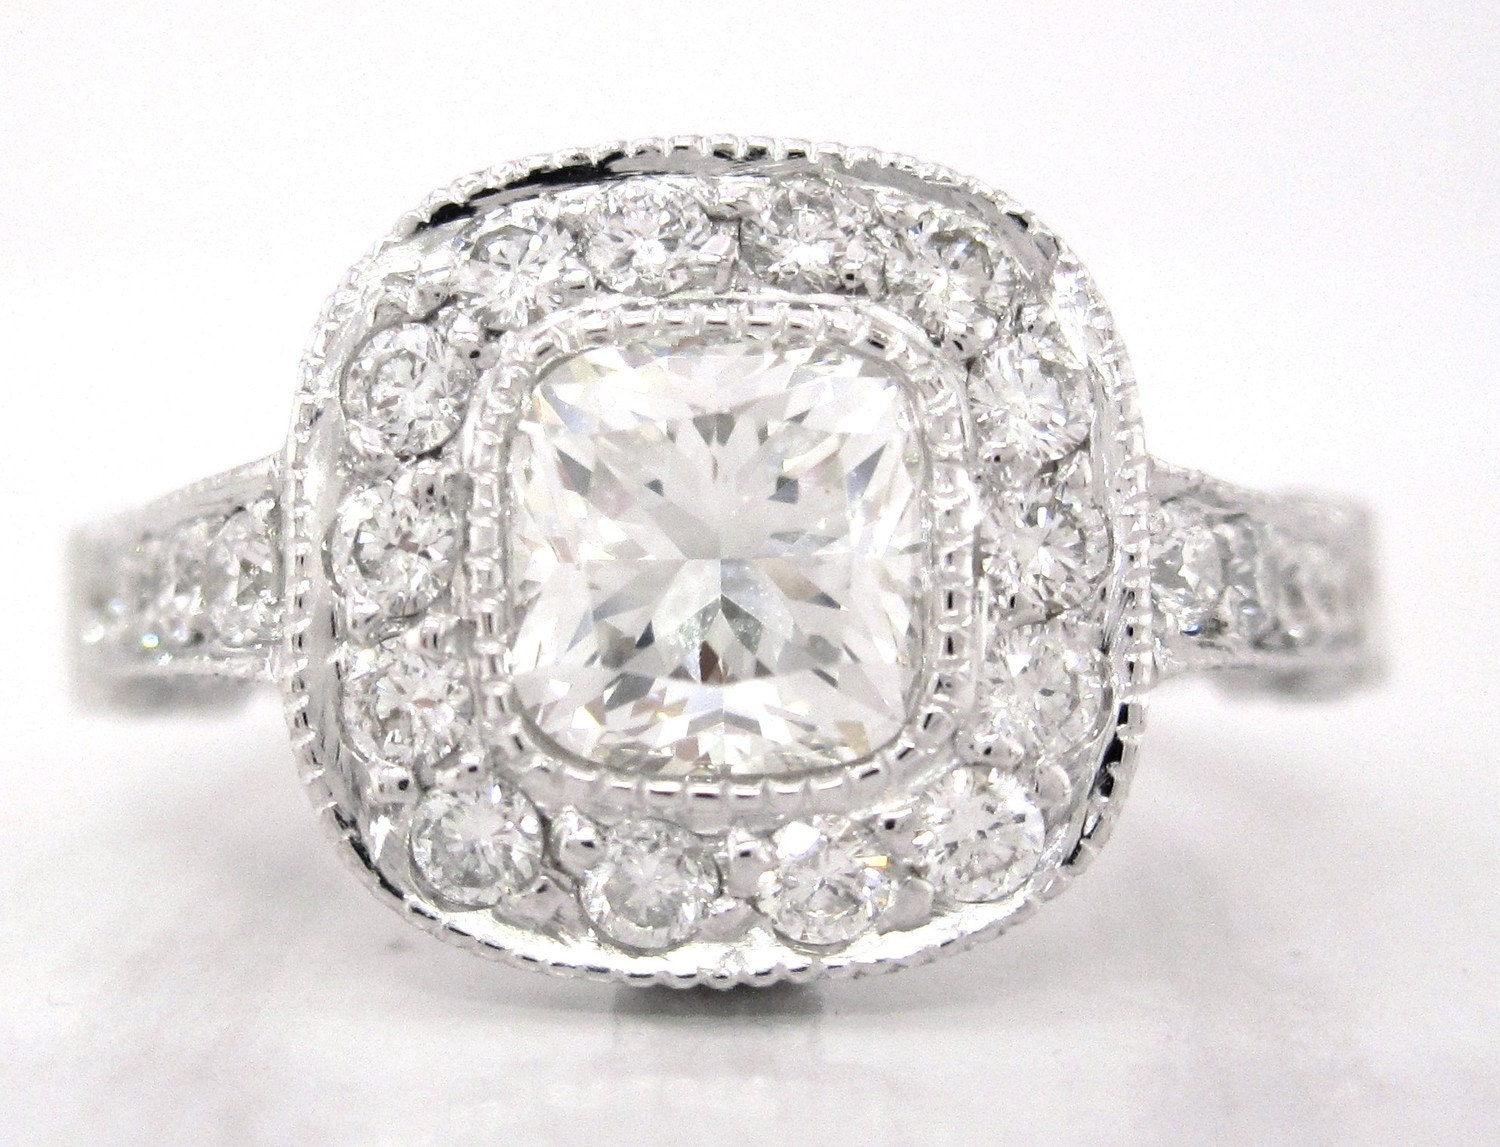 Cushion Cut Diamond Cushion Cut Diamond Tiffany Setting